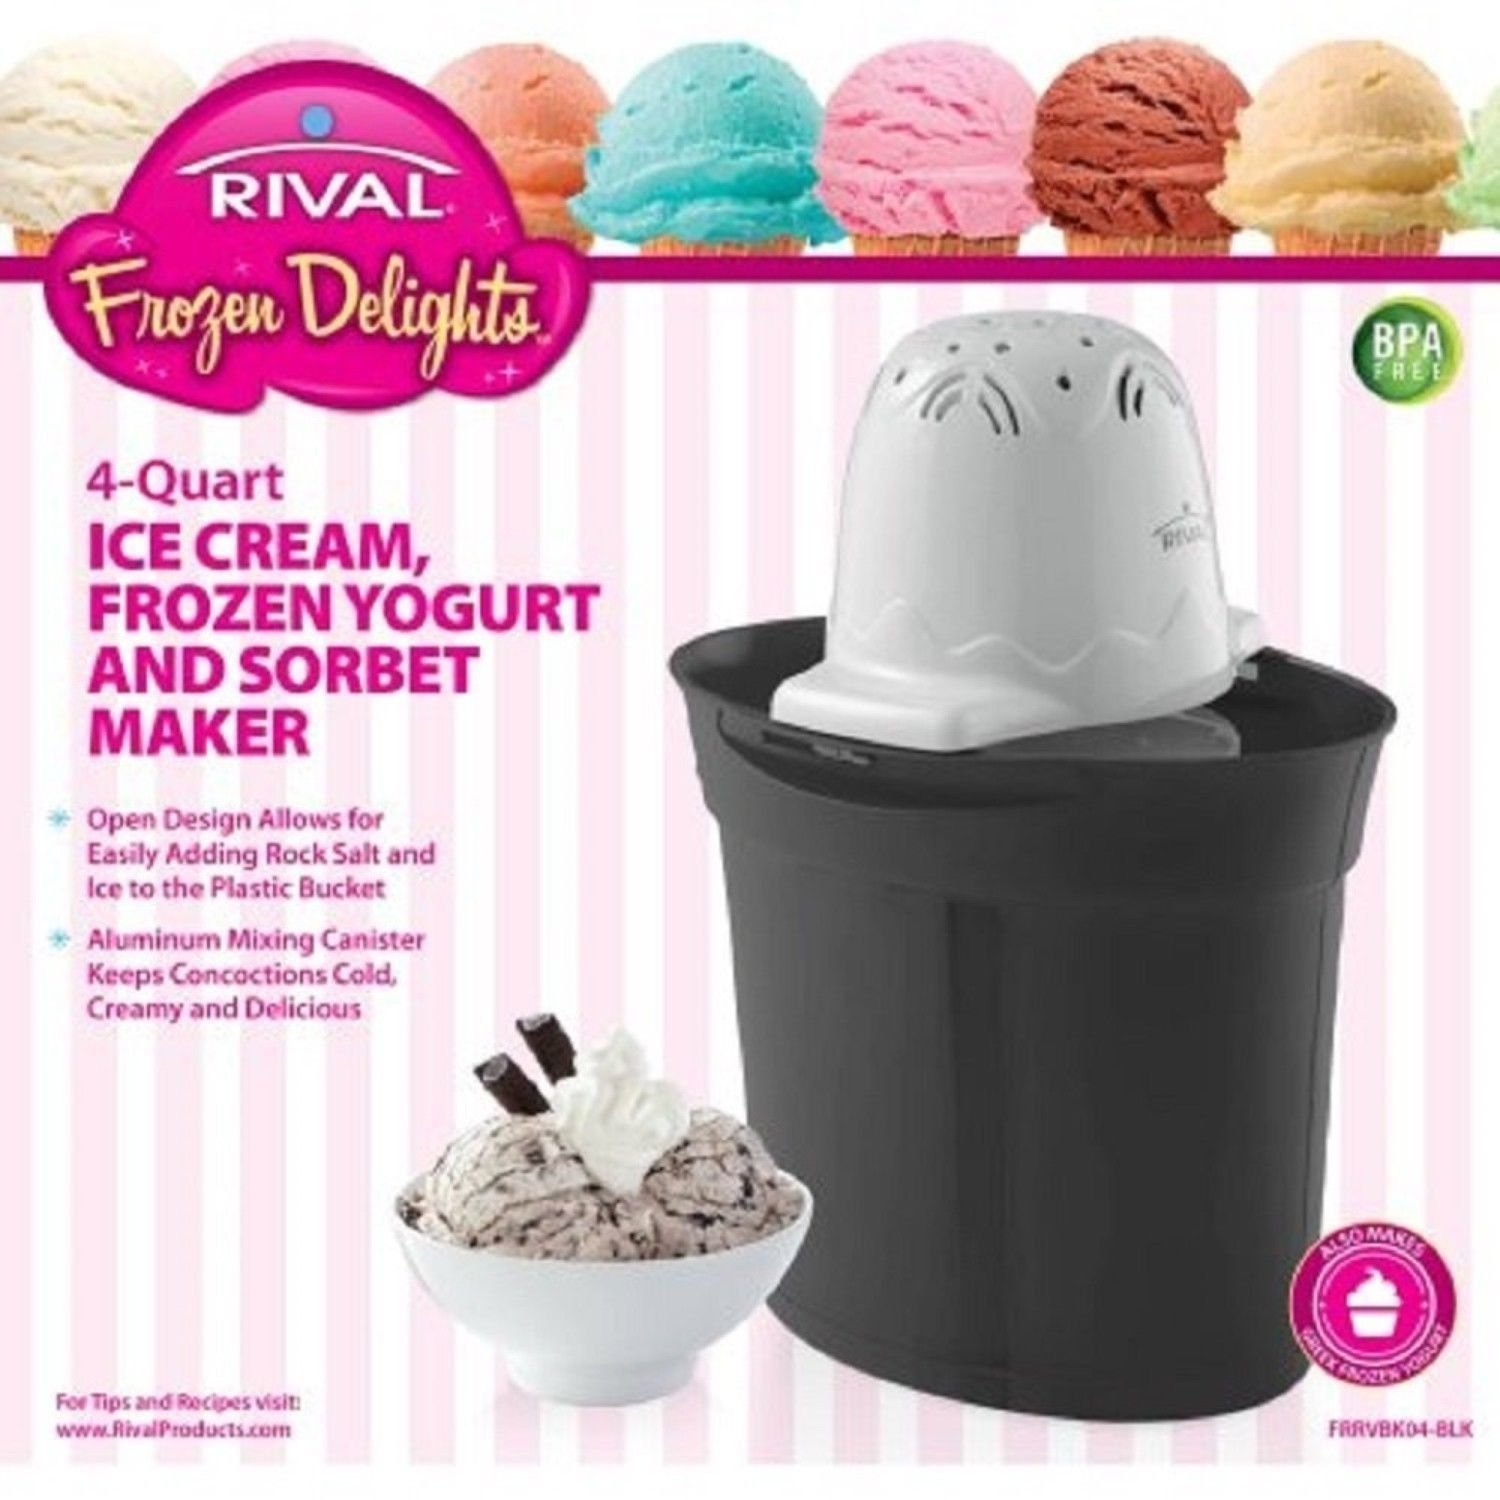 Rival Frozen Delights 4 Quart Ice Cream Maker - BLACK